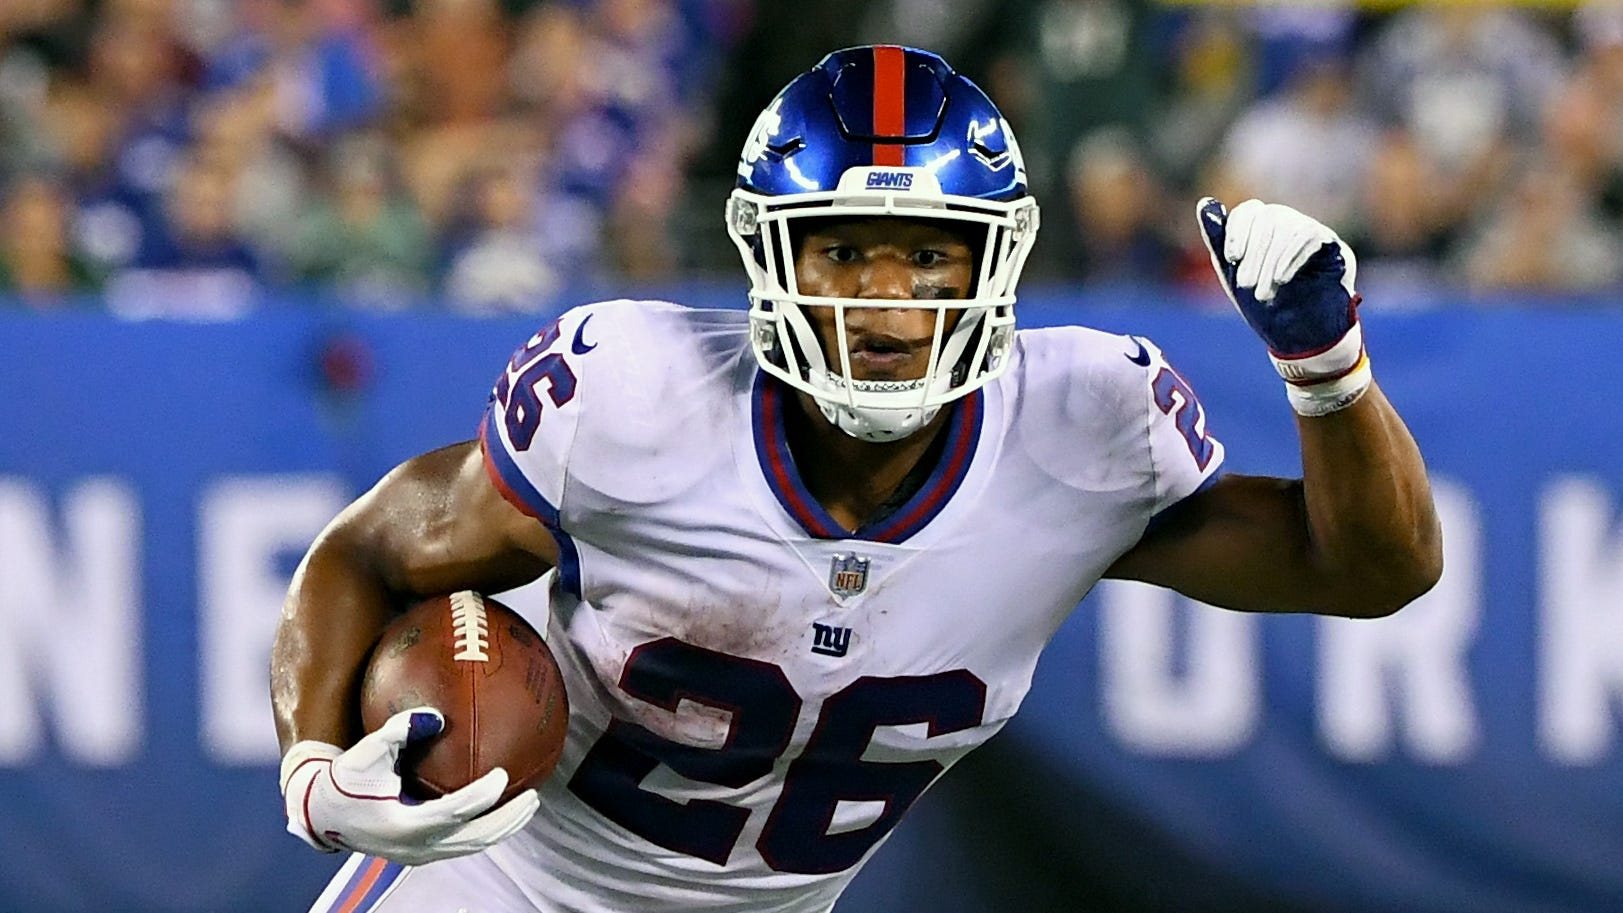 At least the New York Giants have Saquon Barkley, who put on a spectacular performance against the Philadelphia Eagles on Thursday night.